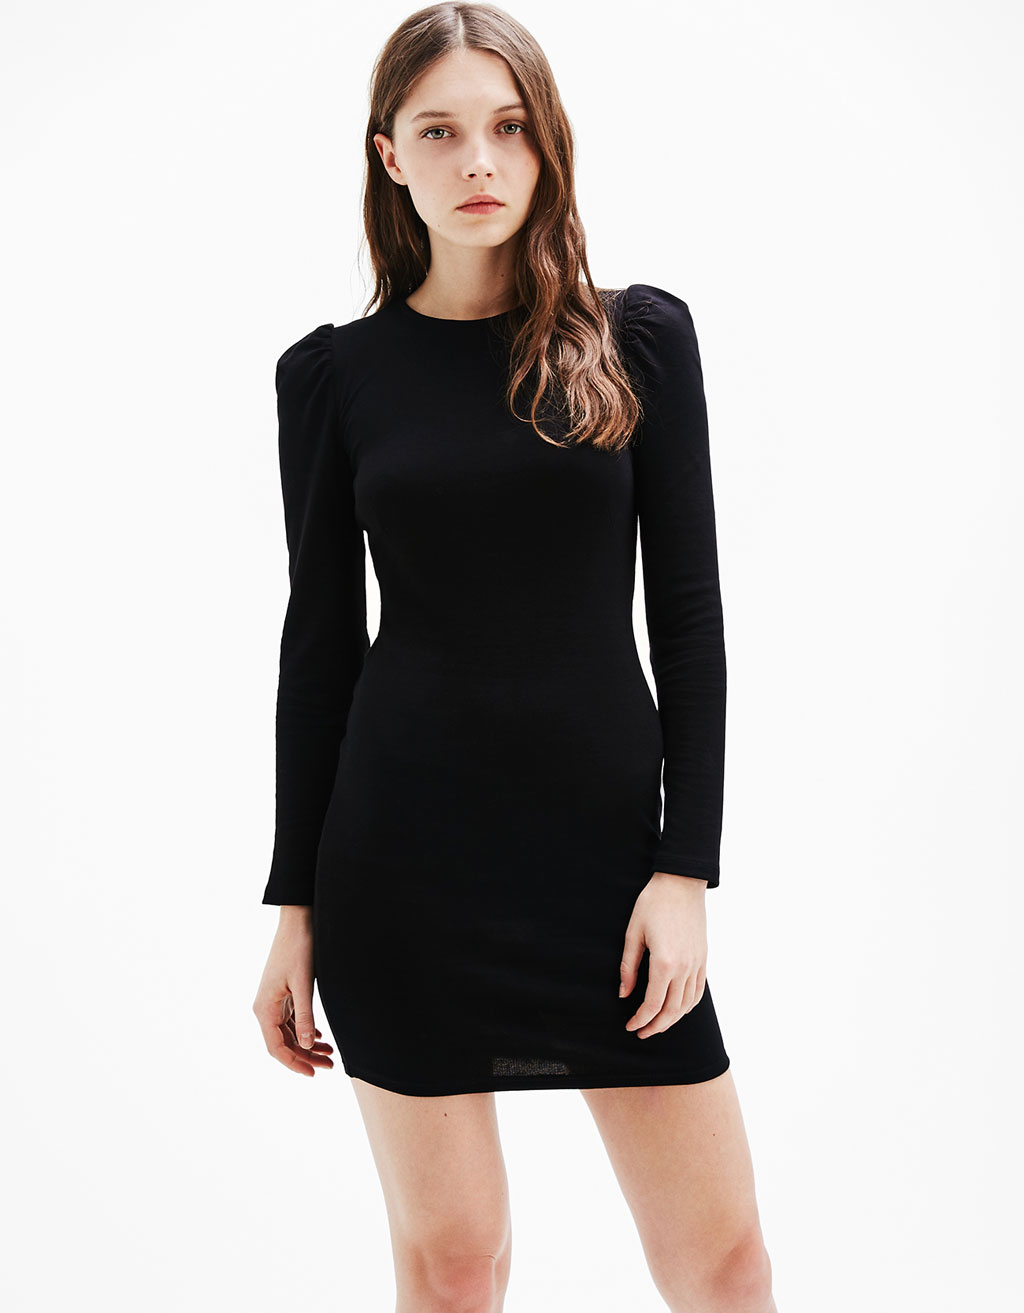 Short fitted dress with puffy sleeves